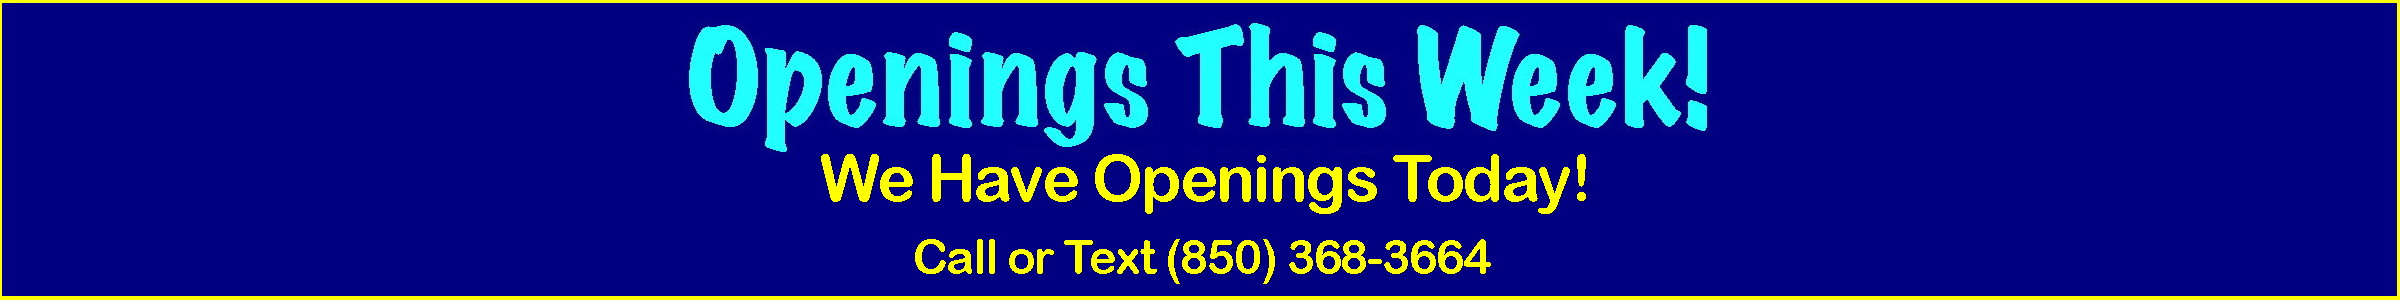 CARPET TILE GROUT AND UPHOLSTERY CLEANING -OPENINGS TODAY THROUGH SAT 8/4/2018